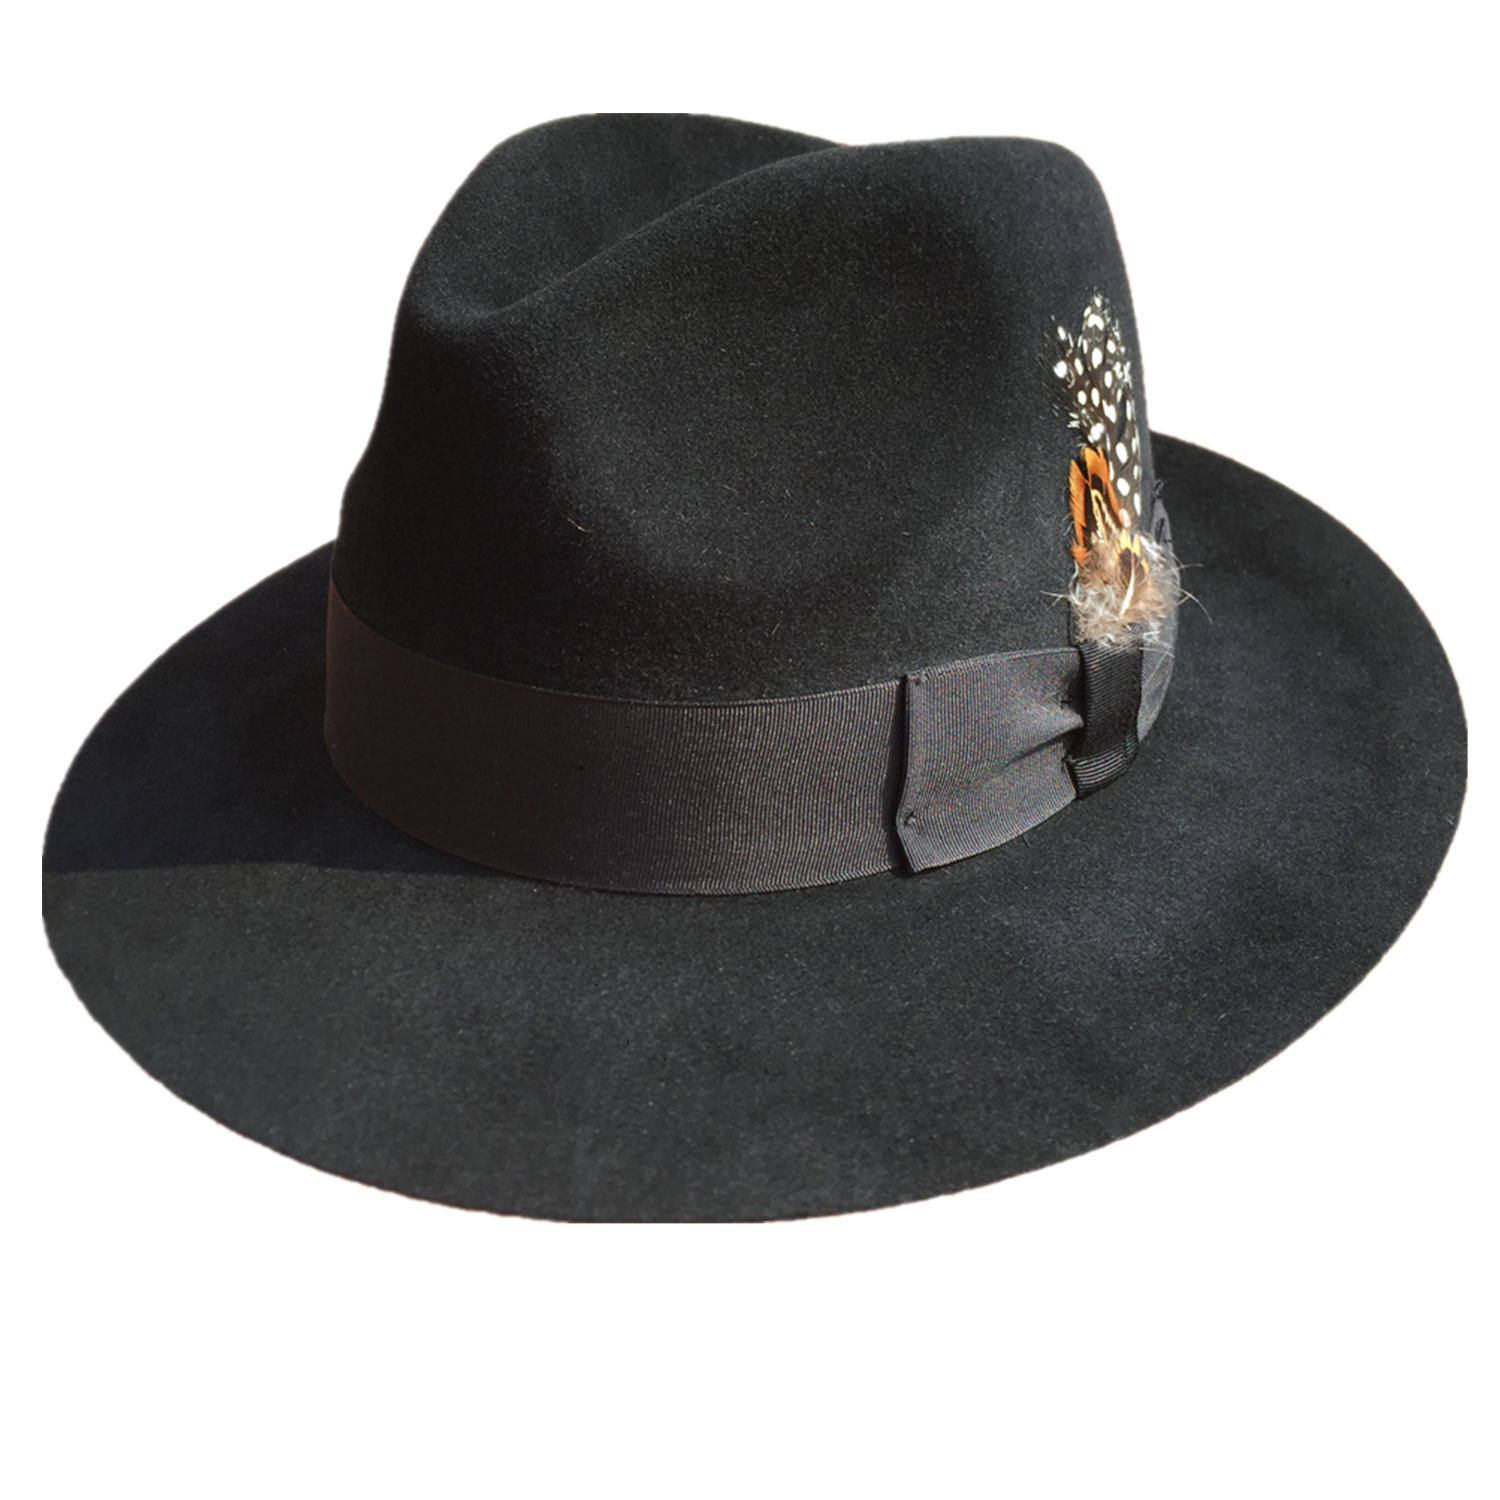 Luxury Angora Rabbit Fedora Hat <font><b>Gangster</b></font> Mobster Michael Jackson Gentleman Hats Black Grey Colors image